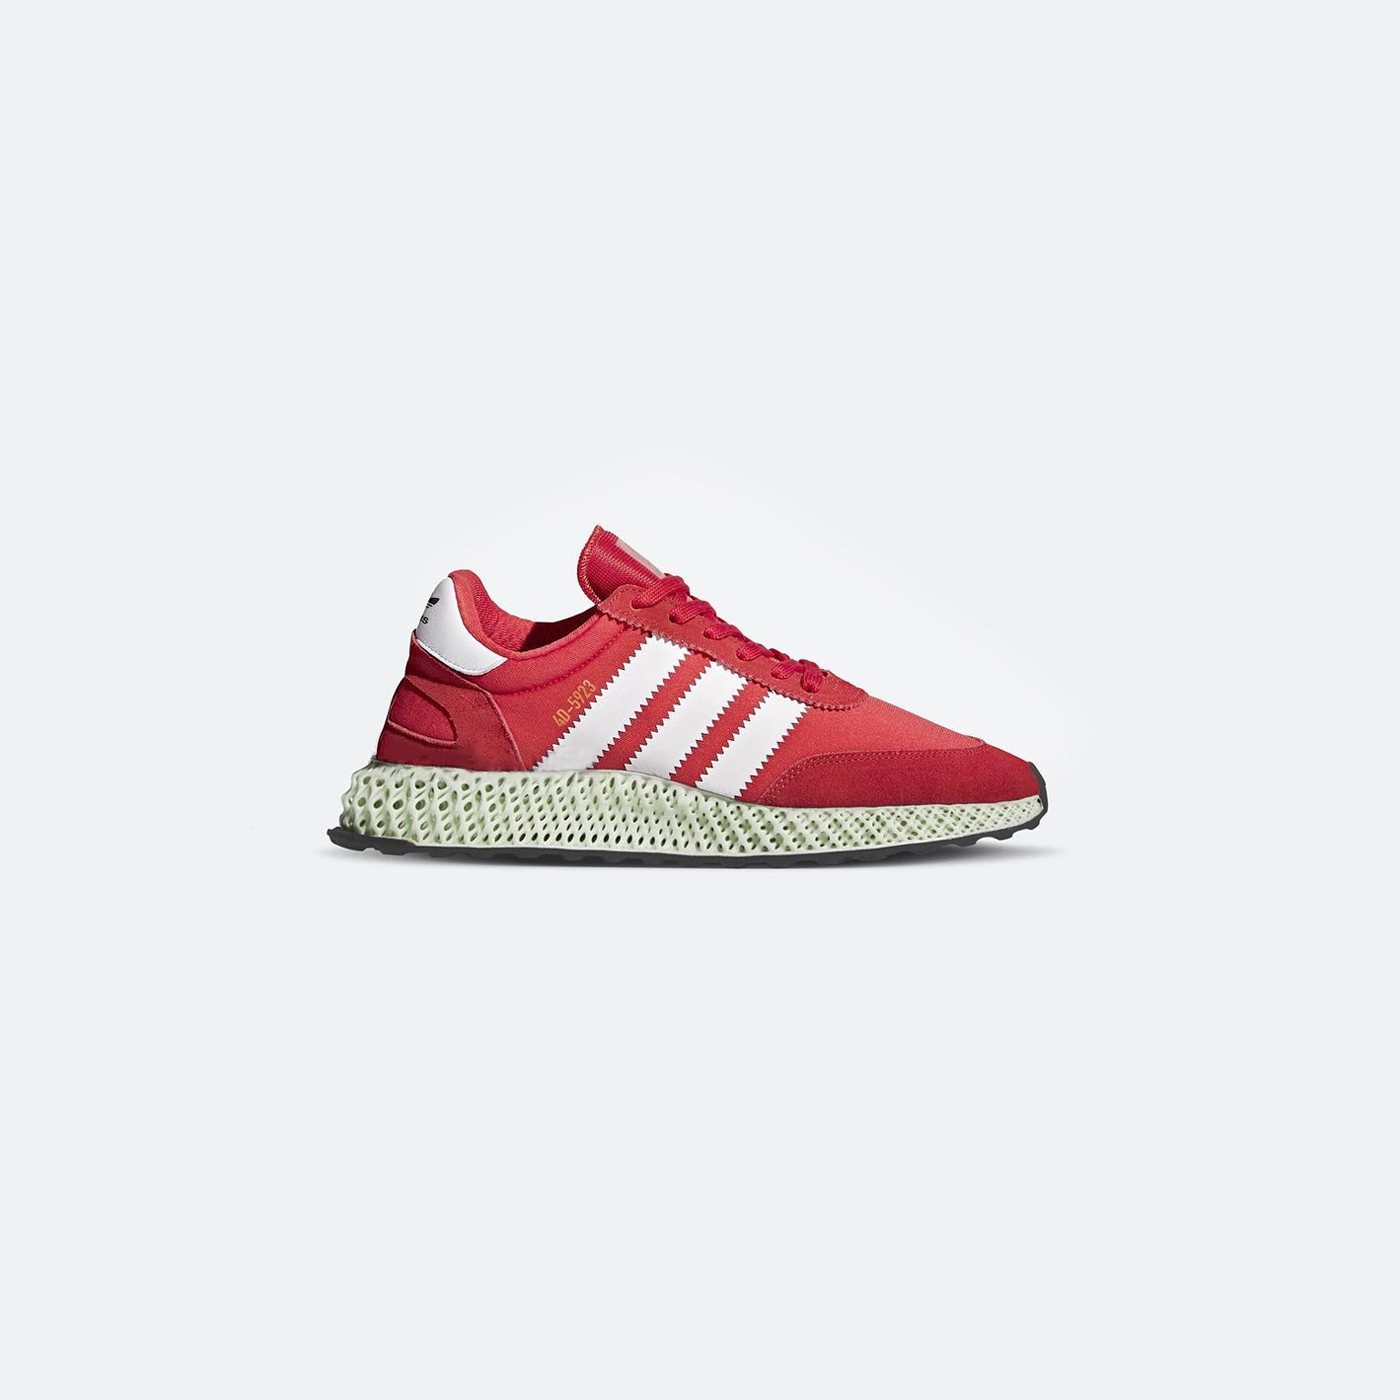 Adidas Futurecraft I-5923 Right